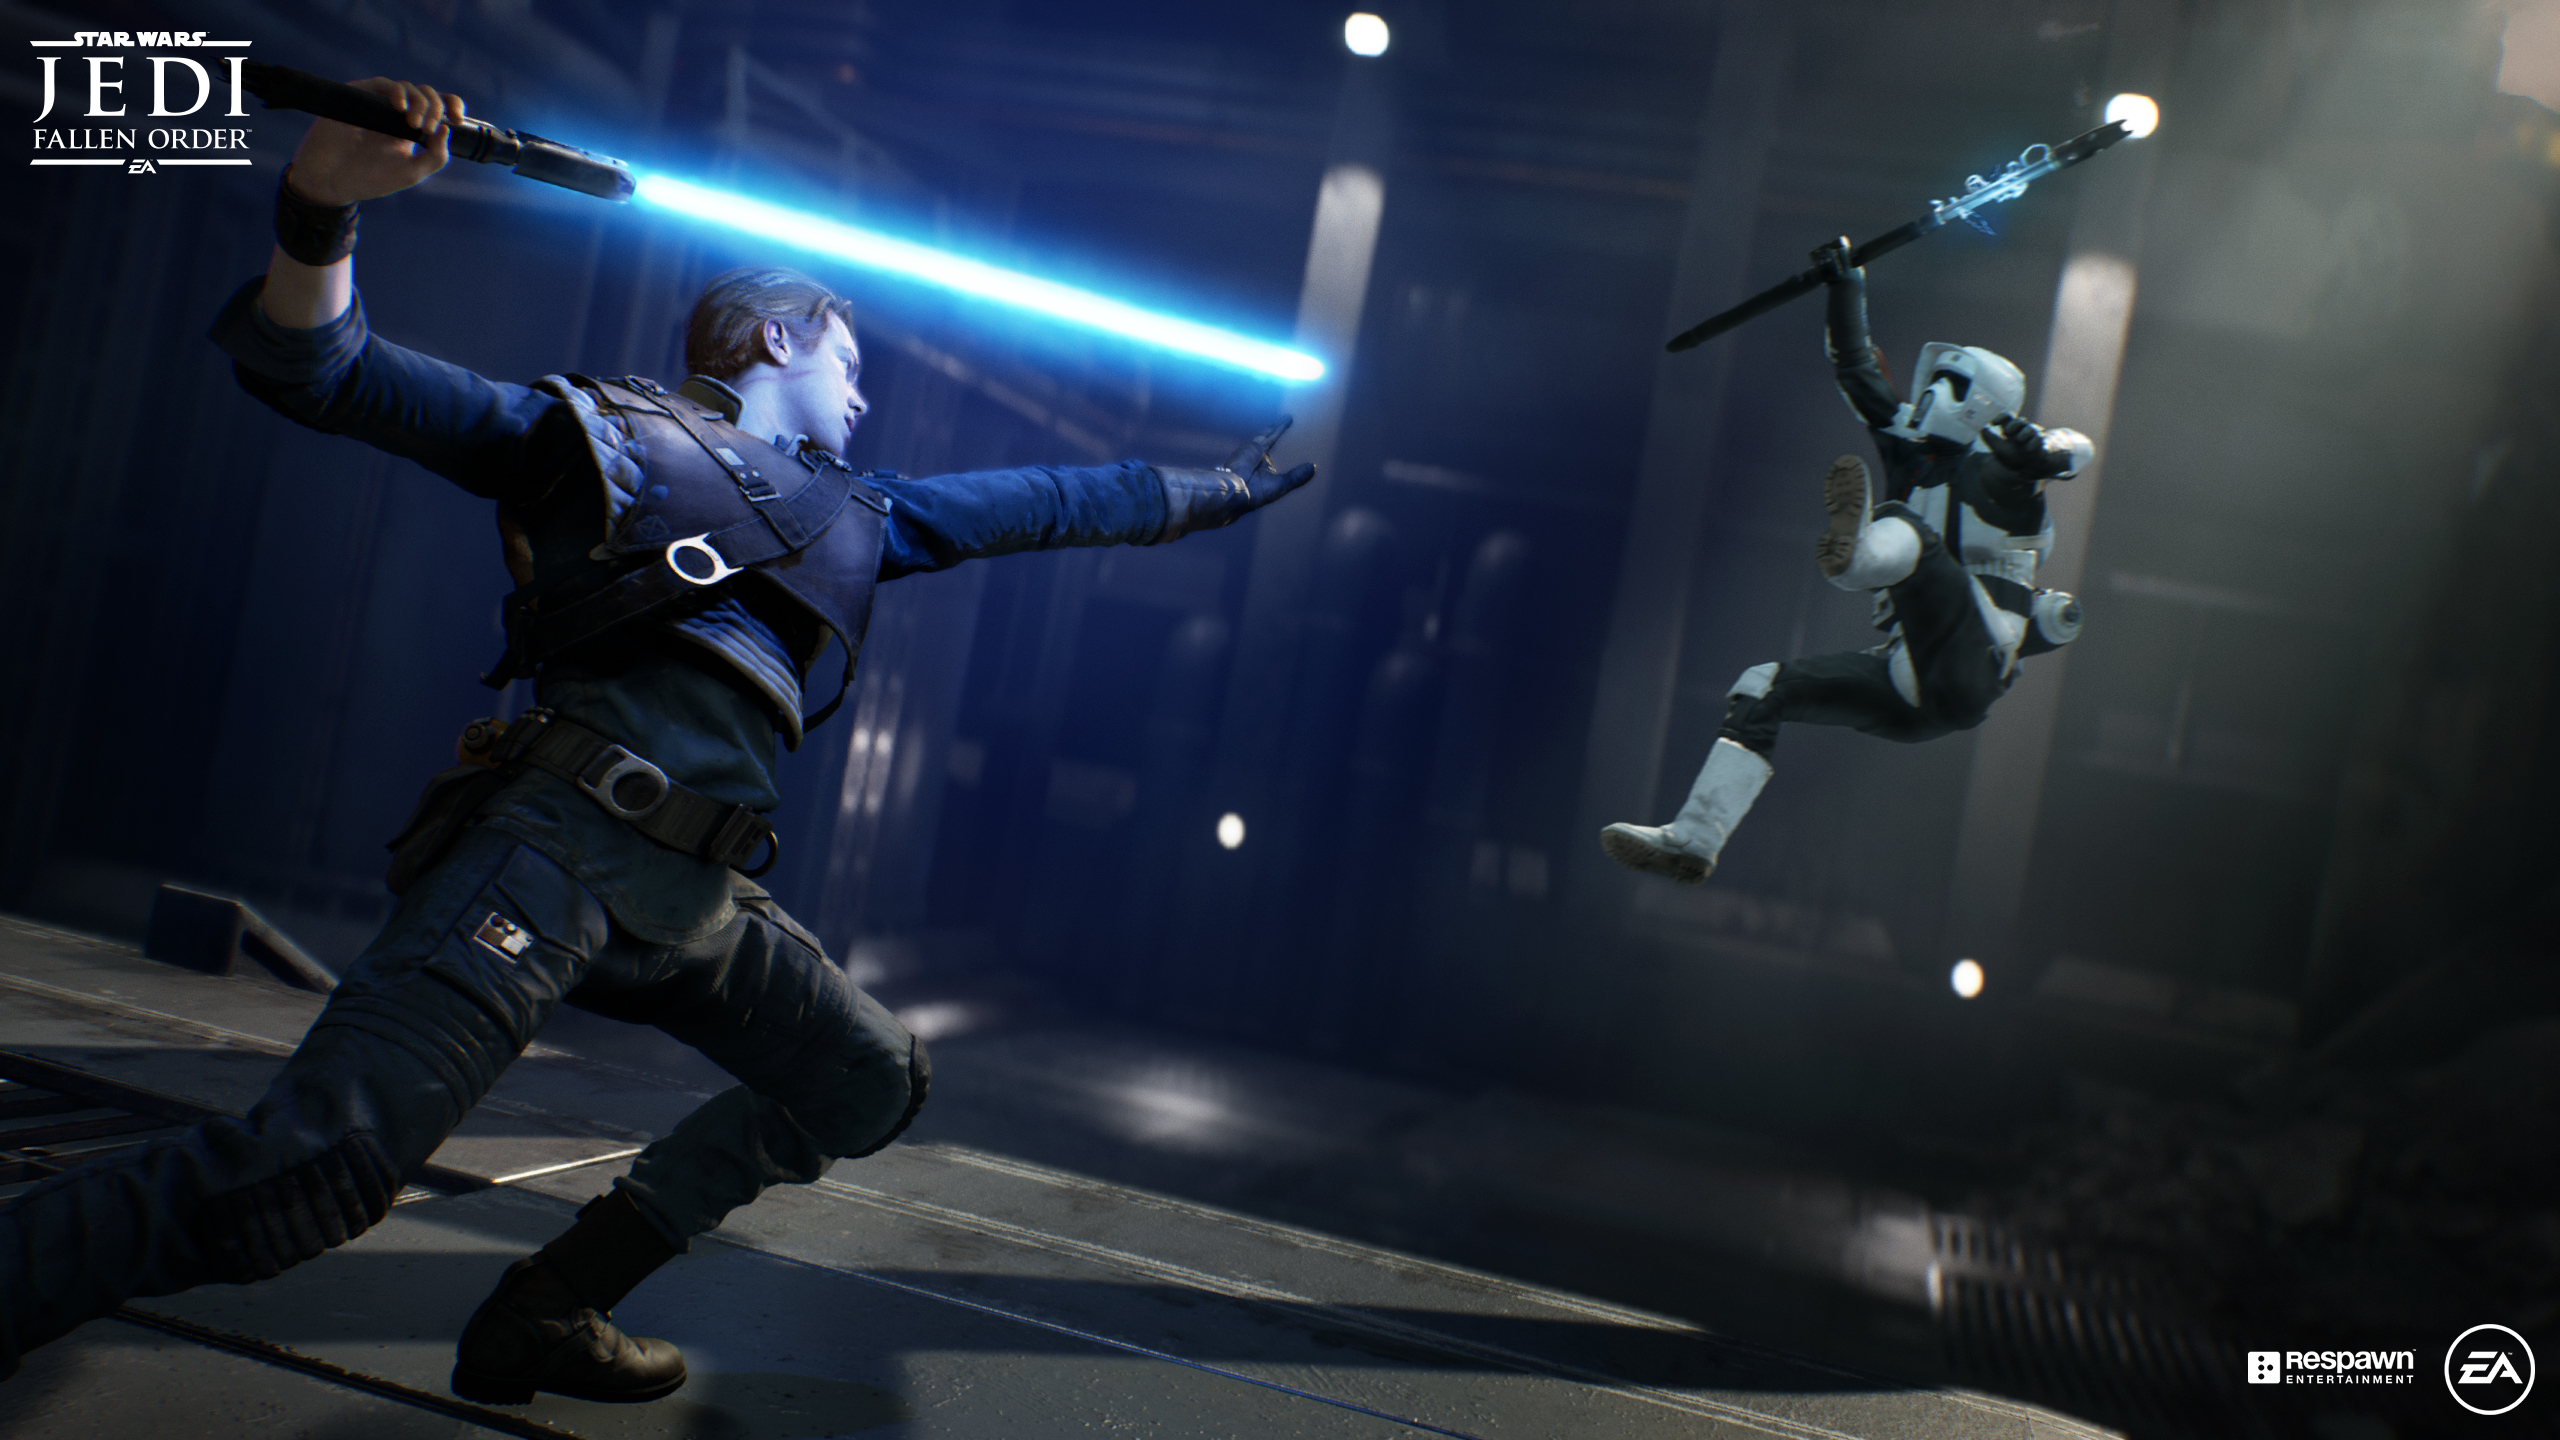 The Jedi In Star Wars Jedi Fallen Order Acts A Lot Like A Sith